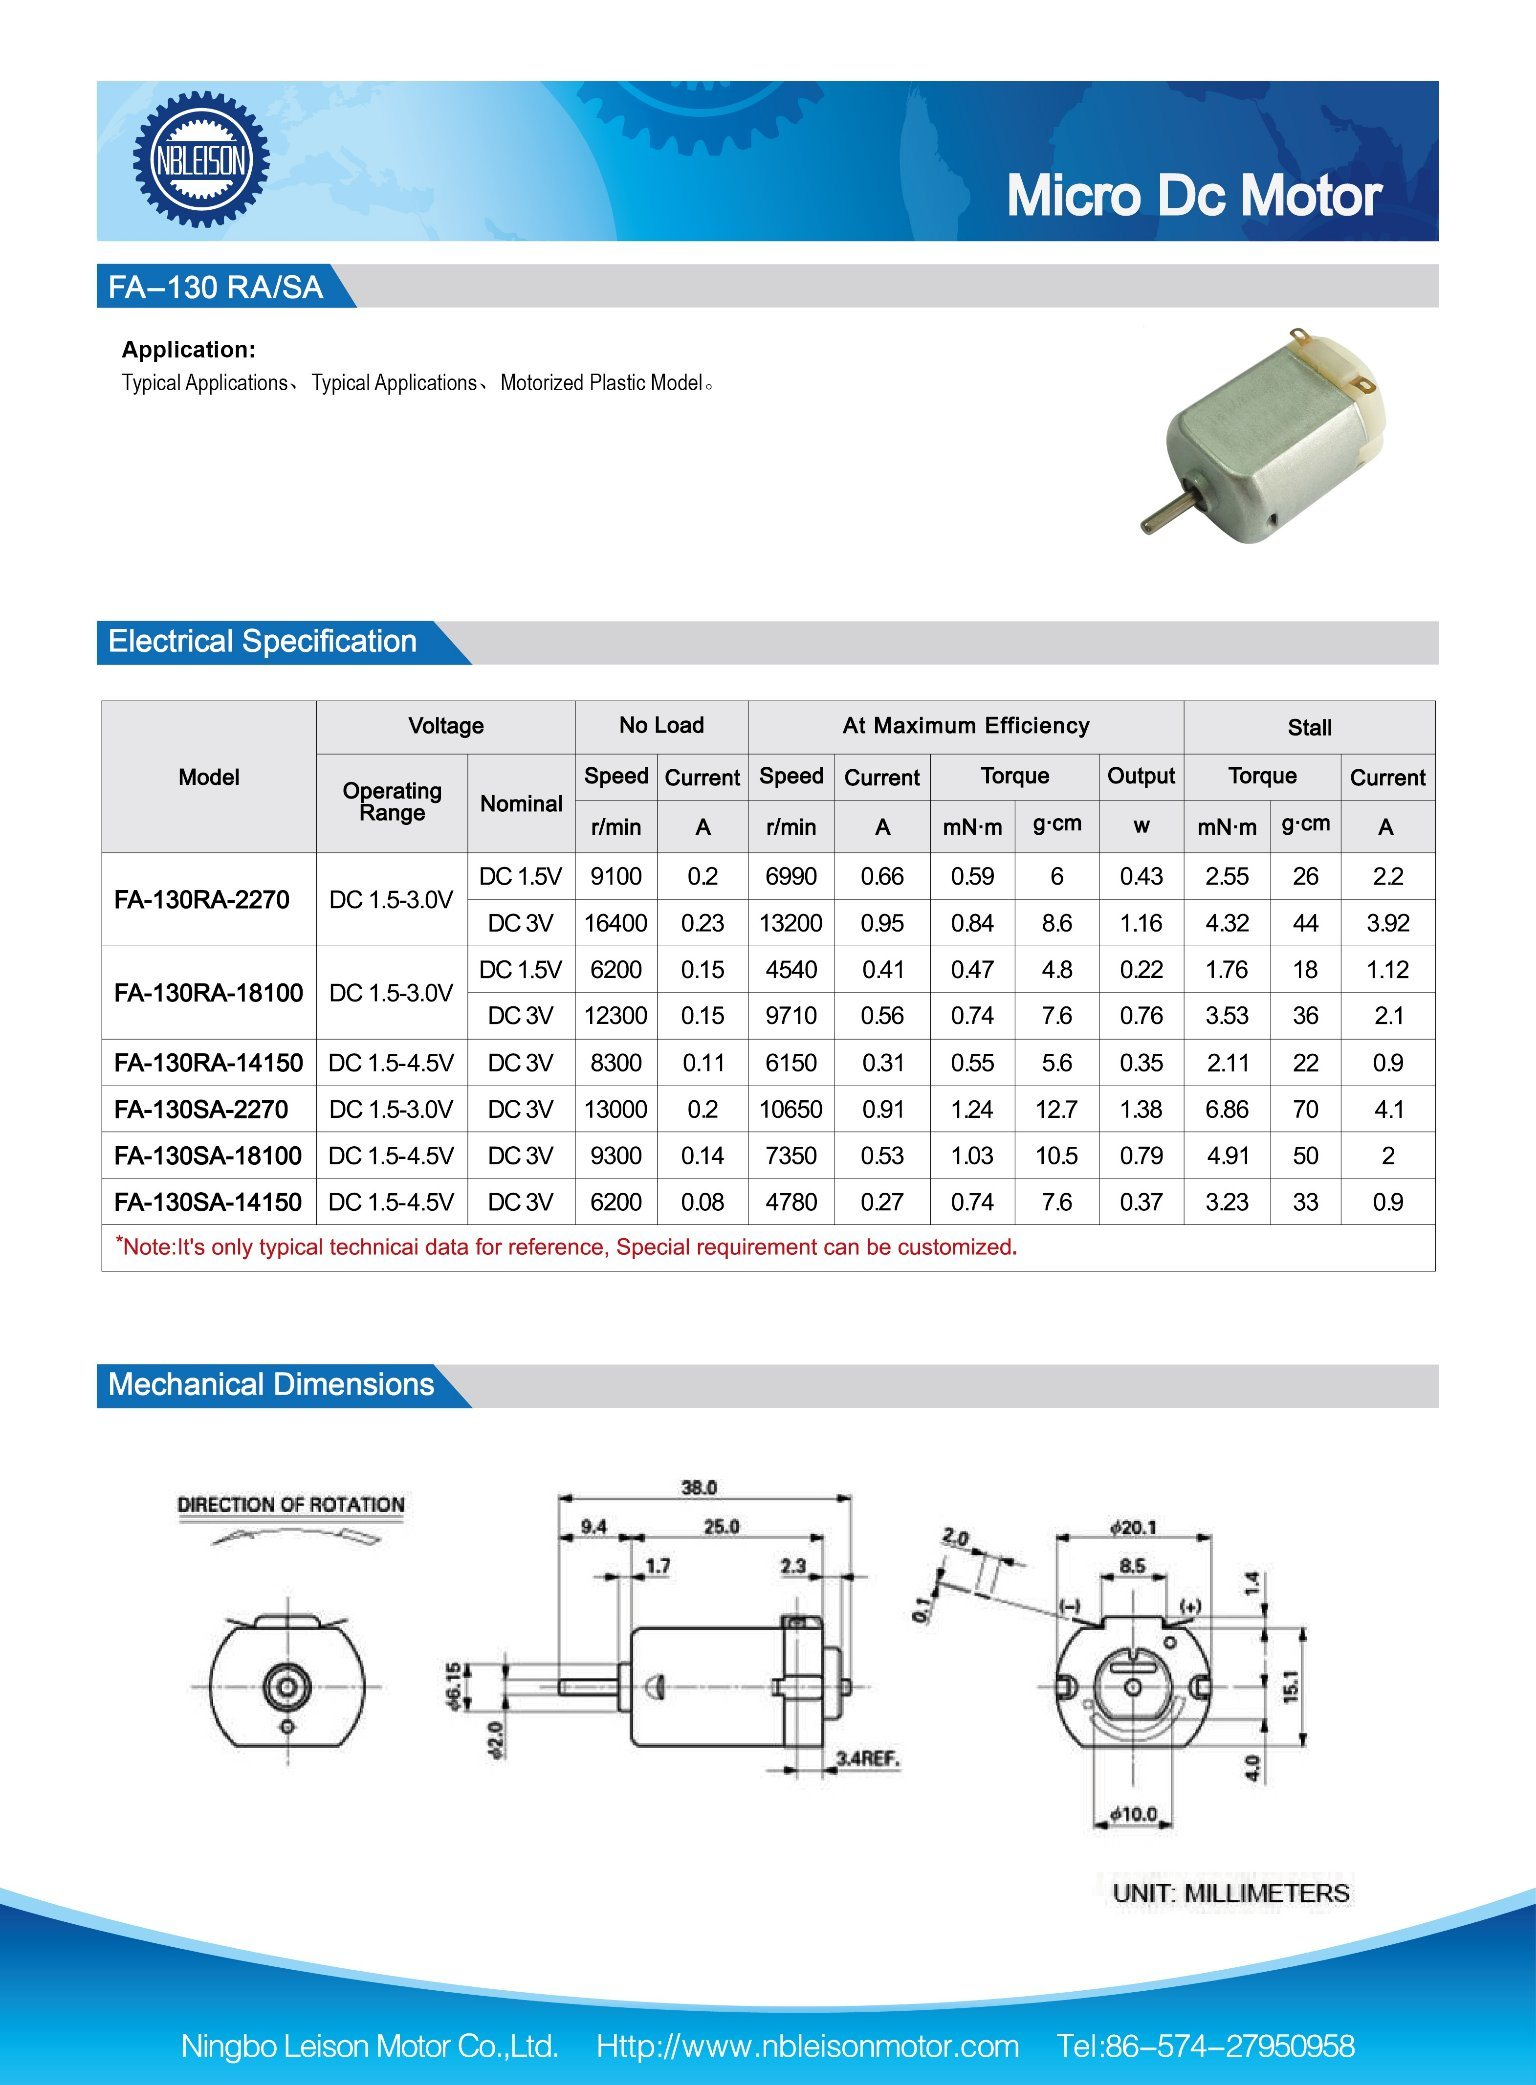 Note: The data sheet is only for reference, We can make the motor according to your requirement after Evaluation